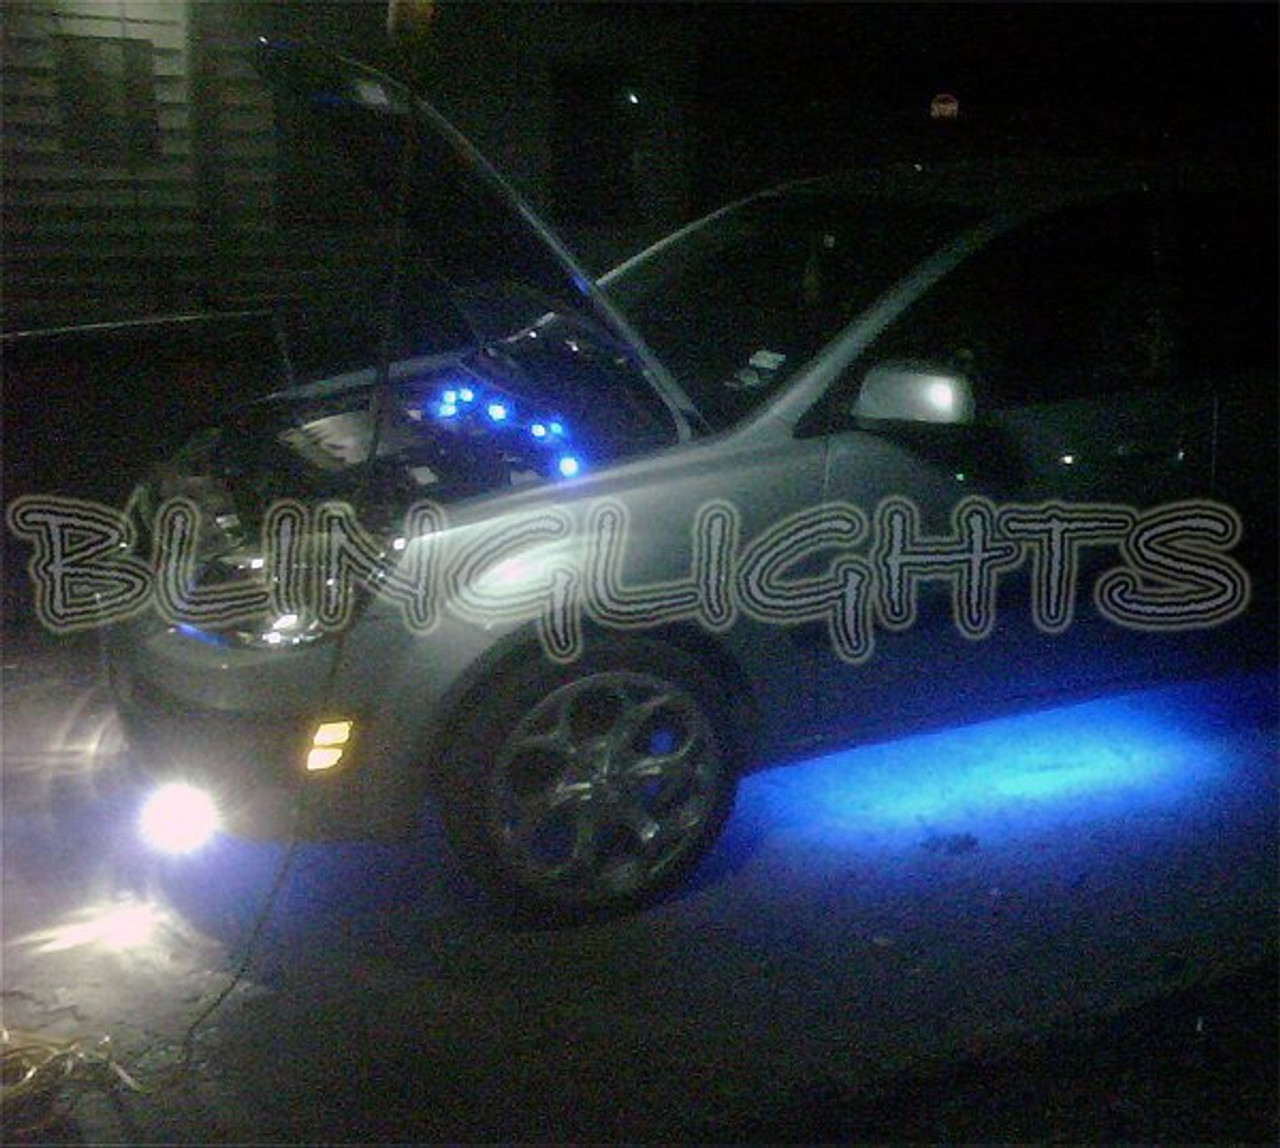 2006 2007 2008 2009 Kia Rio Rio5 Xenon Fog Lamps Driving Lights Foglamps Foglights Drivinglights Kit